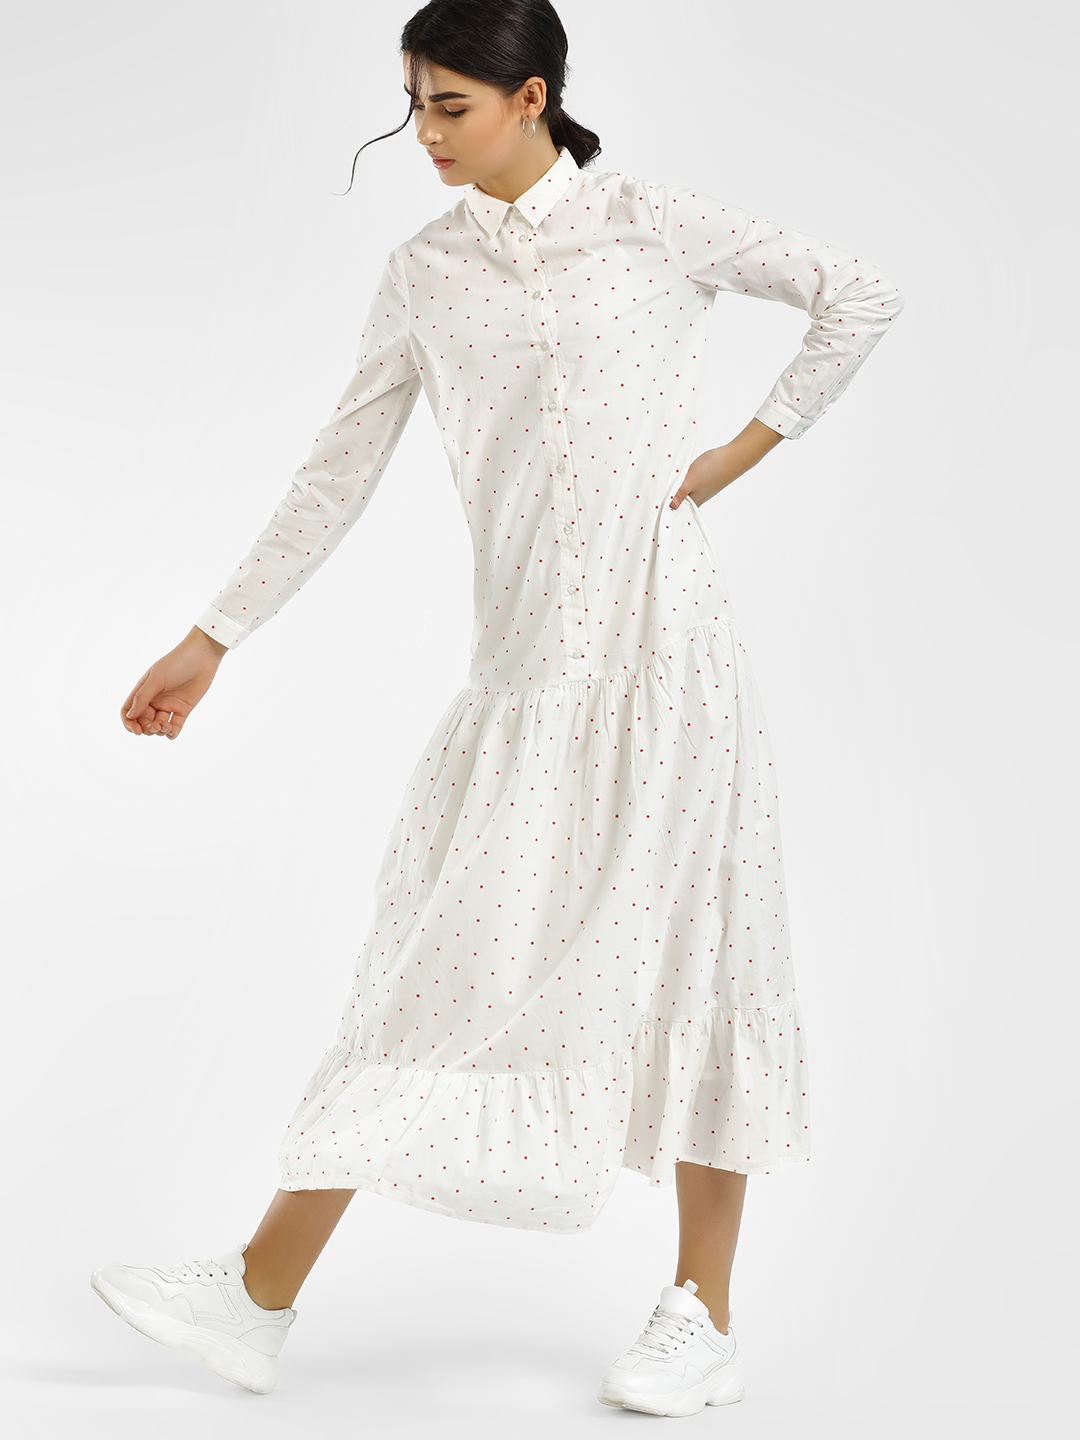 Vero Moda White Polka Dot Dobby Shirt Dress 1